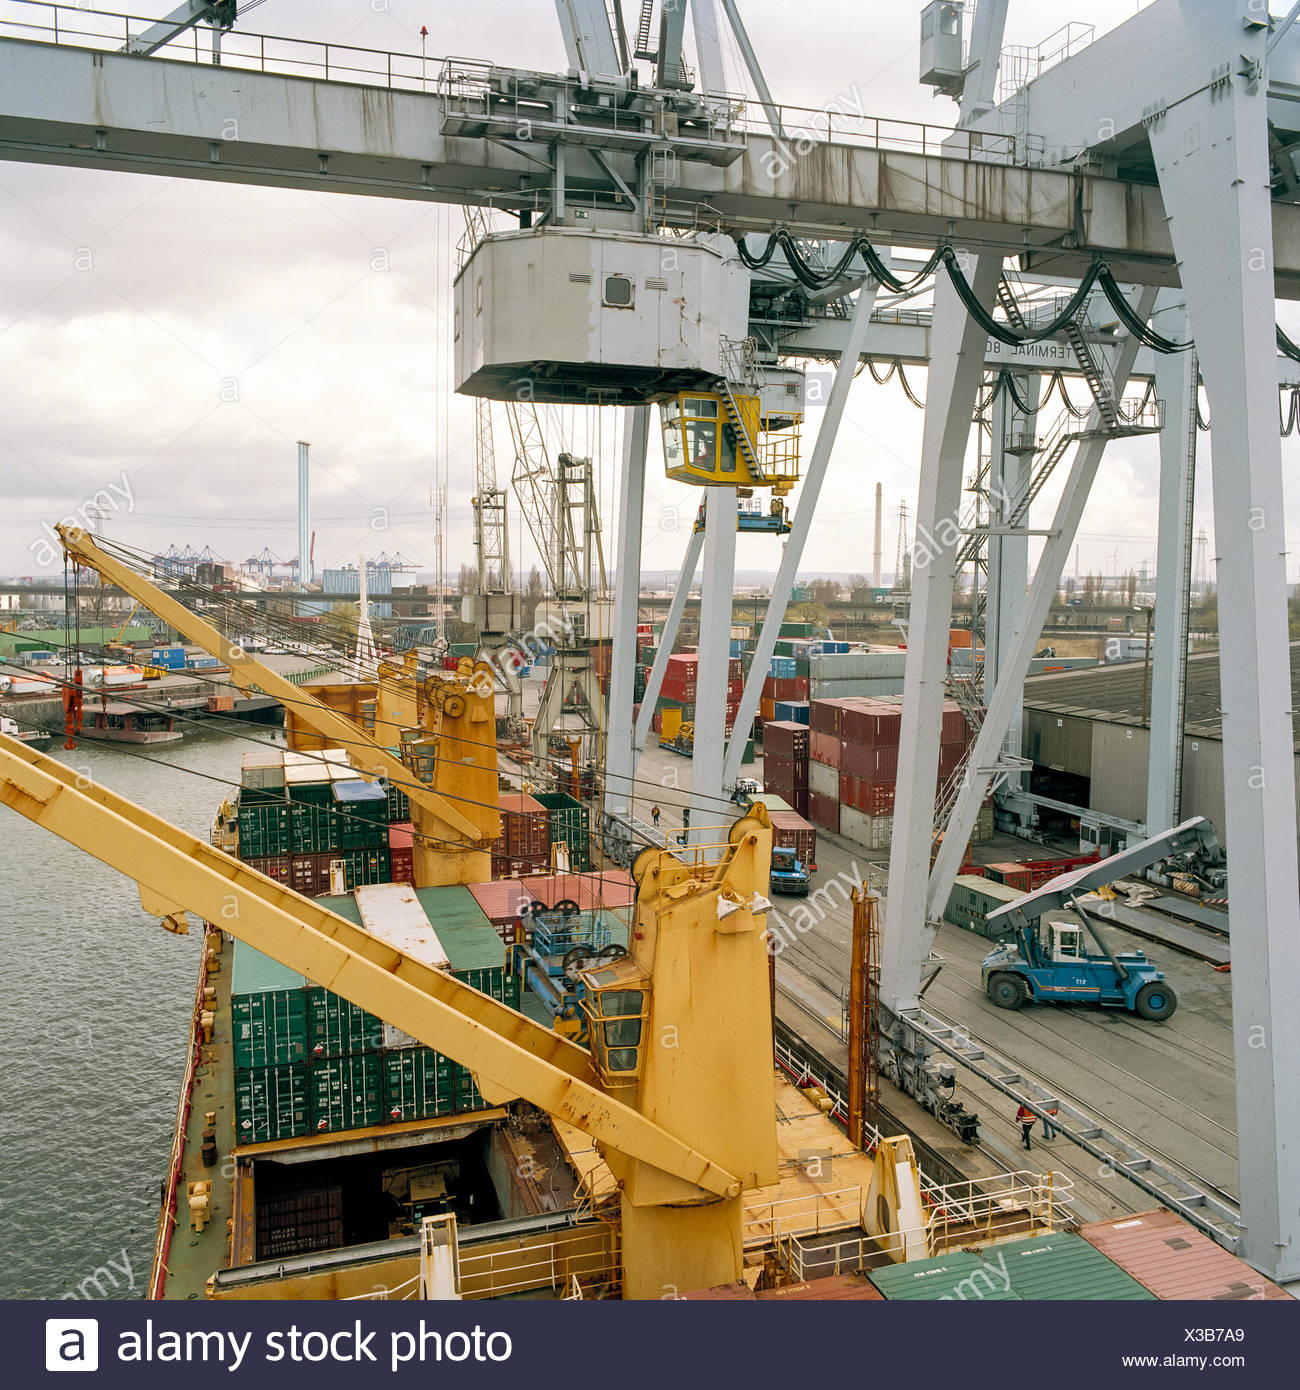 Gantry crane and containers on ship in port - Stock Image